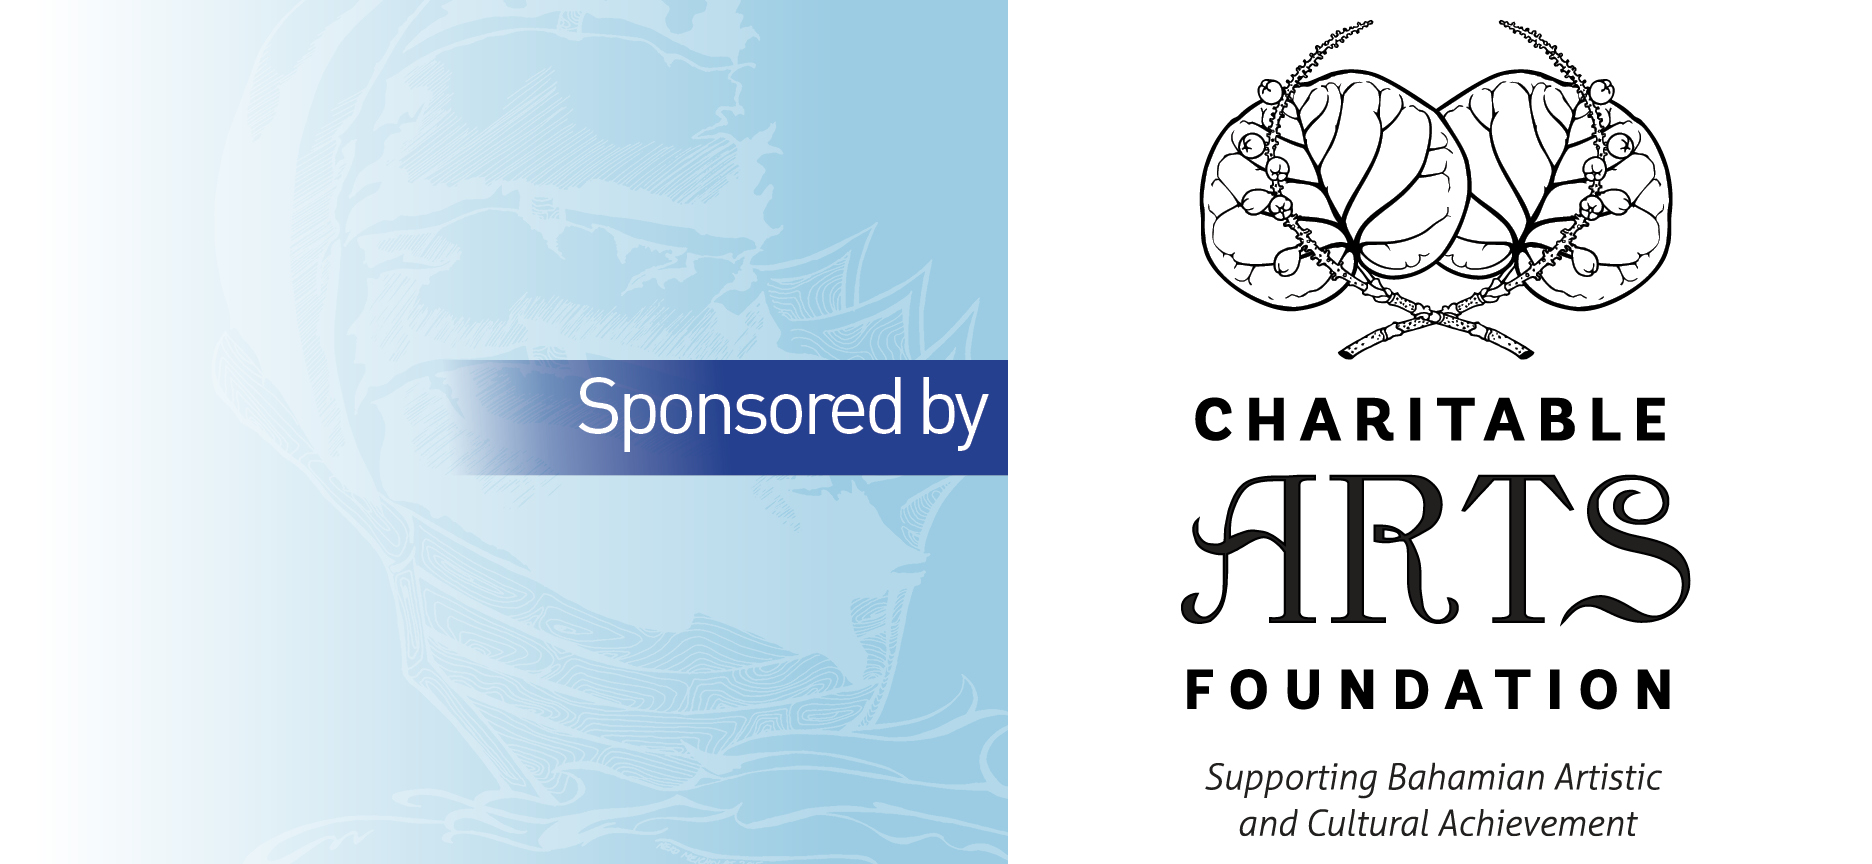 SEAWORDS SPONSOR CHARITABLE ARTS FOUNDATION.jpg